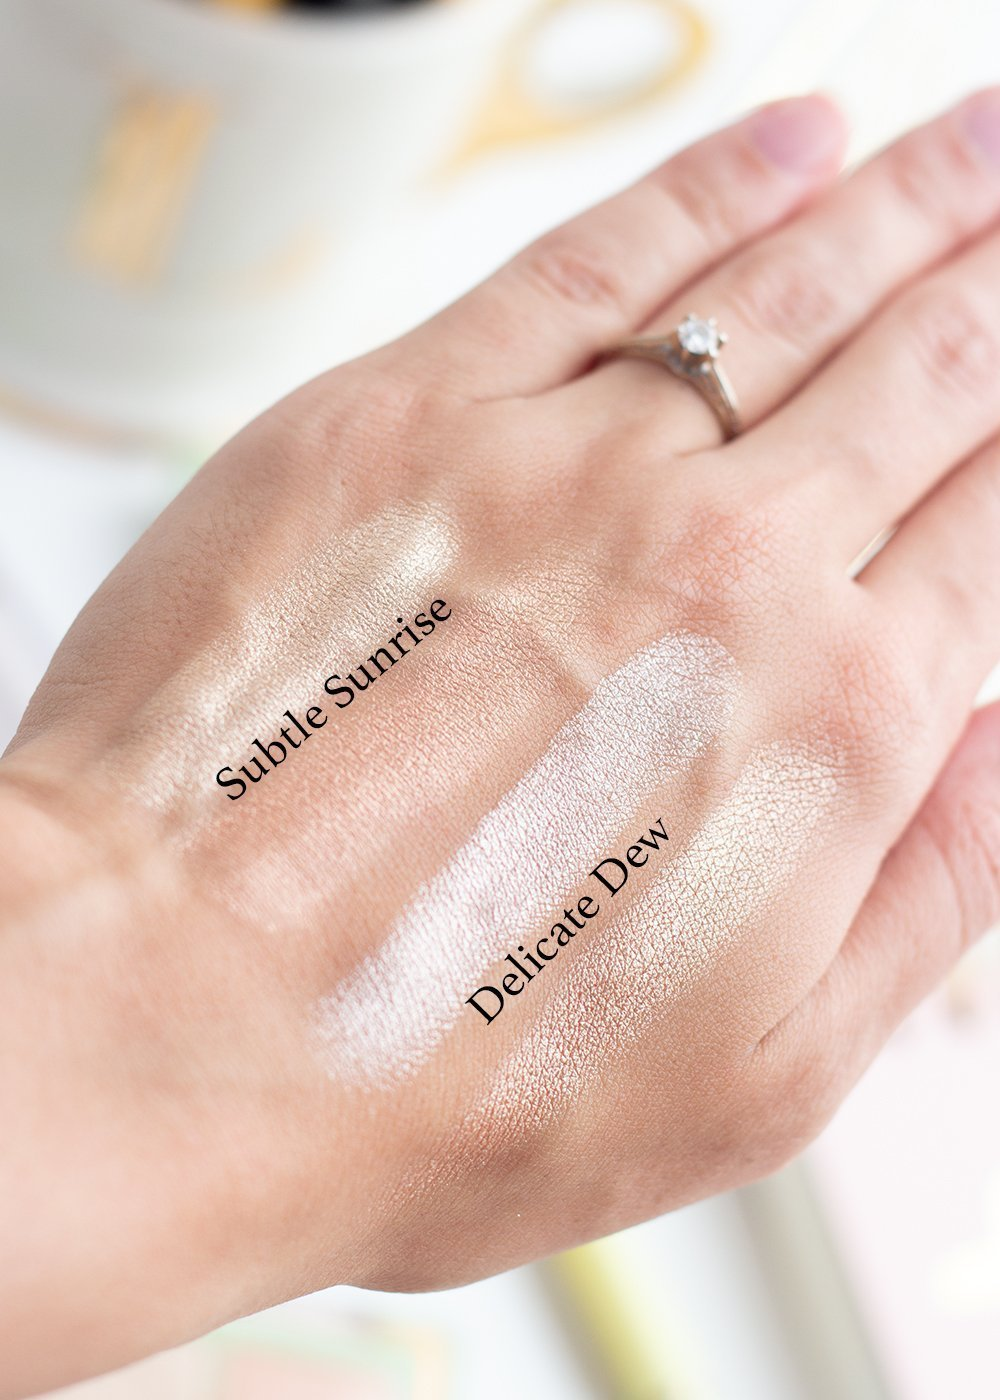 Swatches of the Pixi Glowy Gossamer Duos